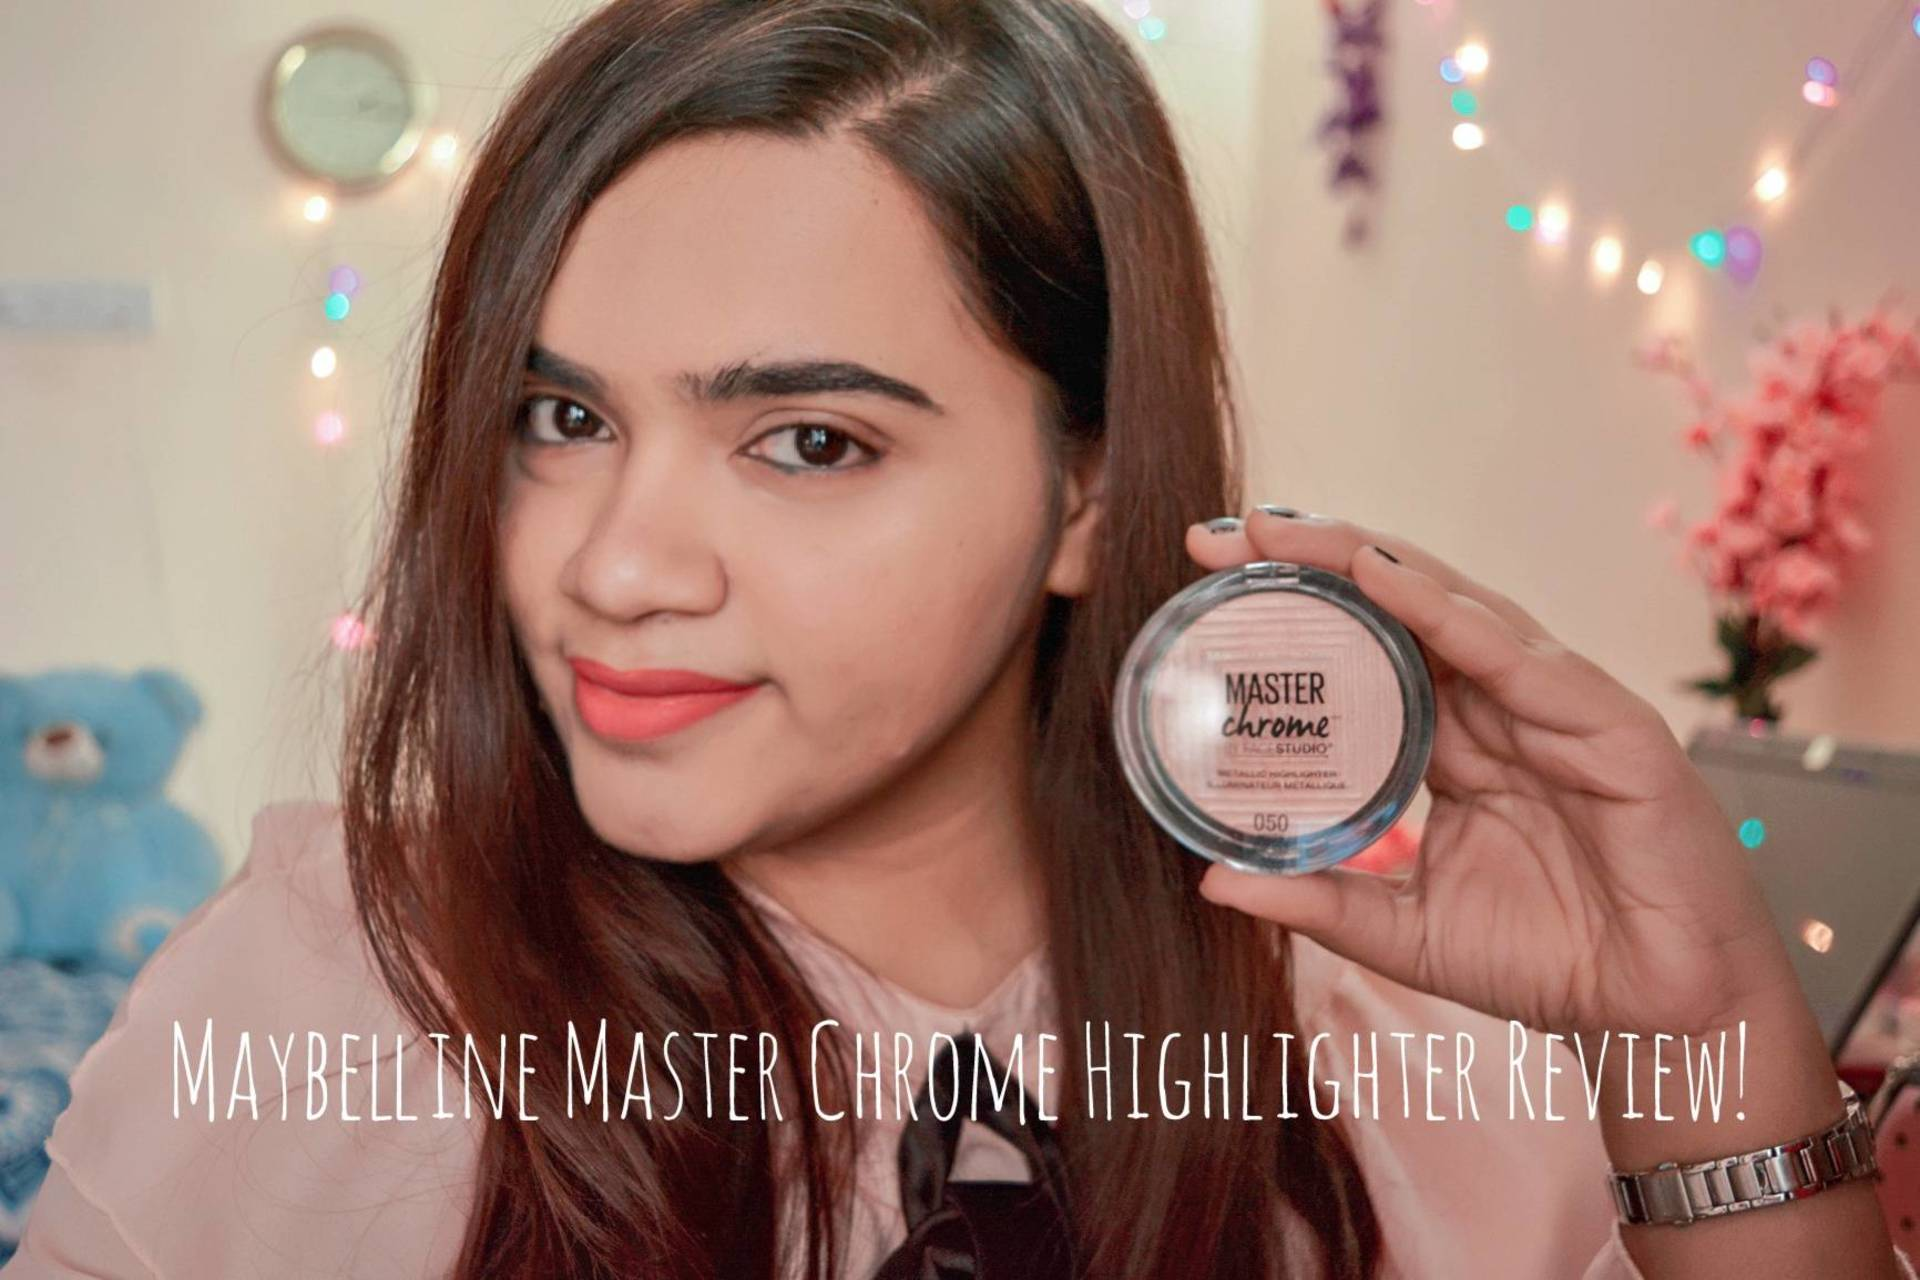 Maybelline Master Chrome Highlighter Review! image